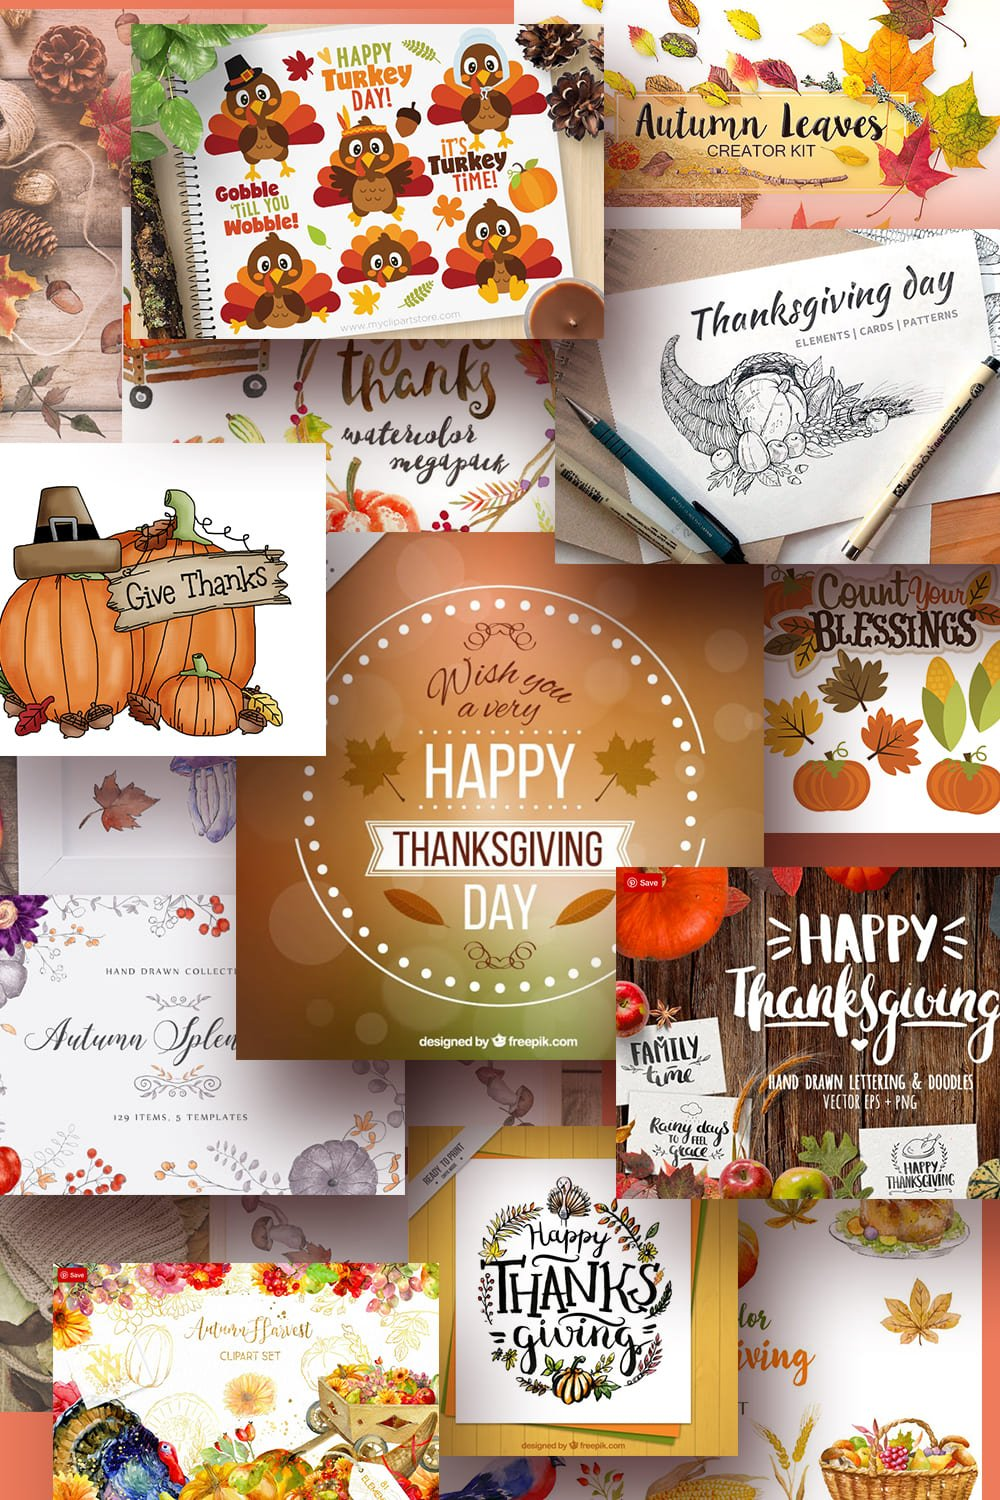 Thanksgiving Clipart Pinterest Image.